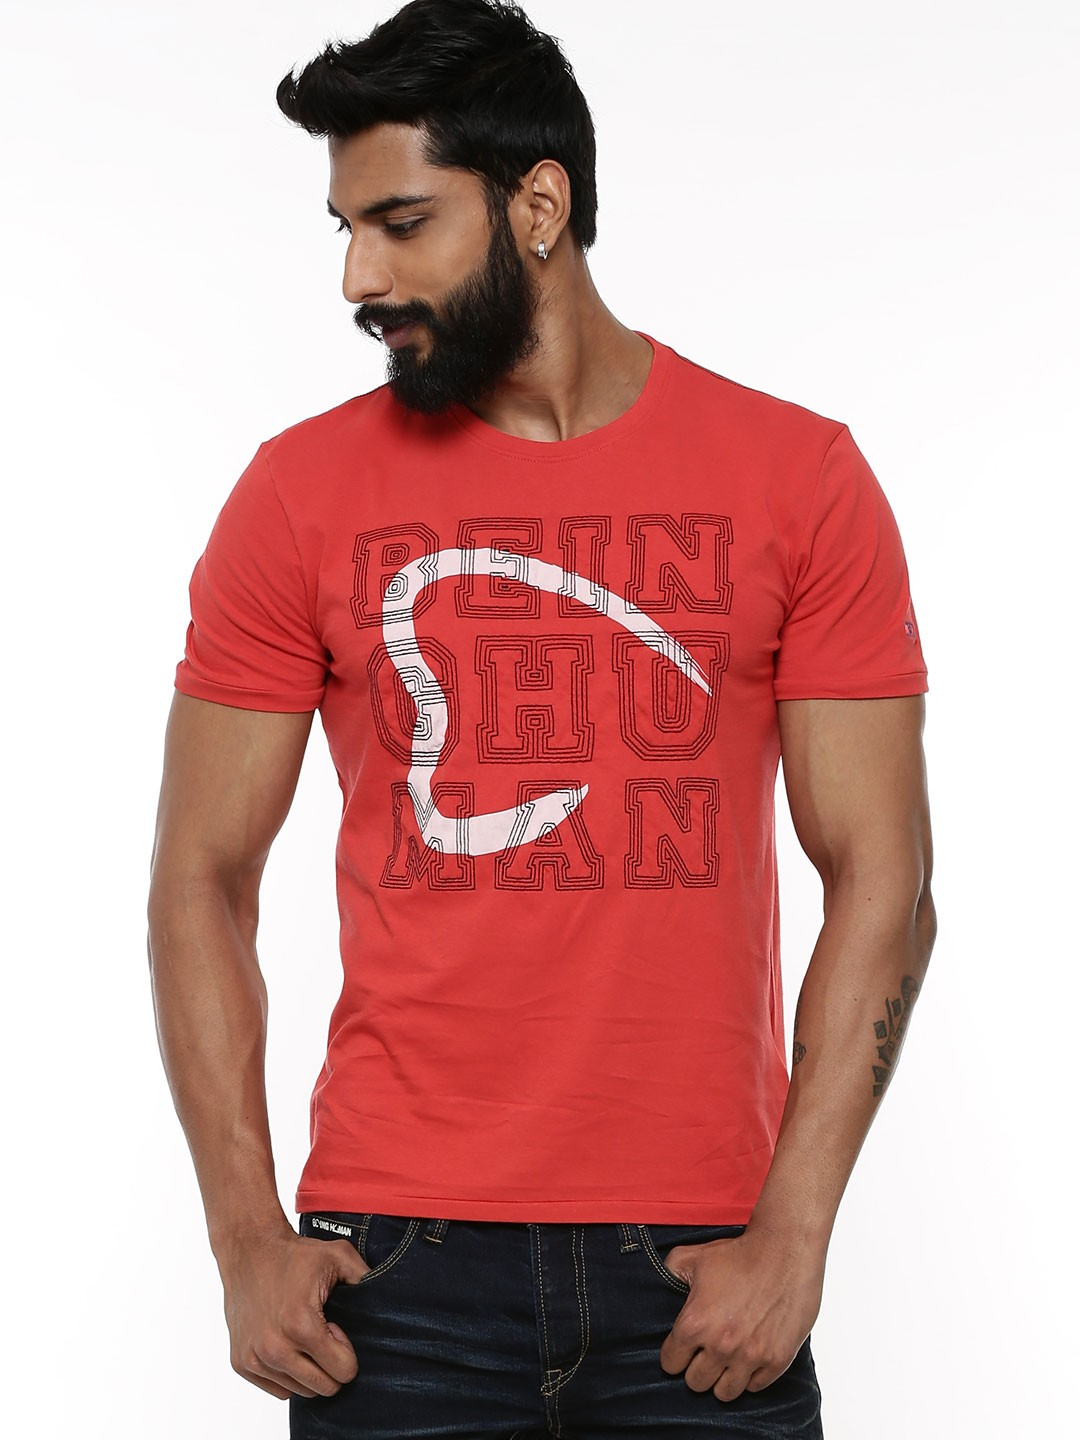 Buy being human logo print tee for men men 39 s red t for Being human t shirts buy online india